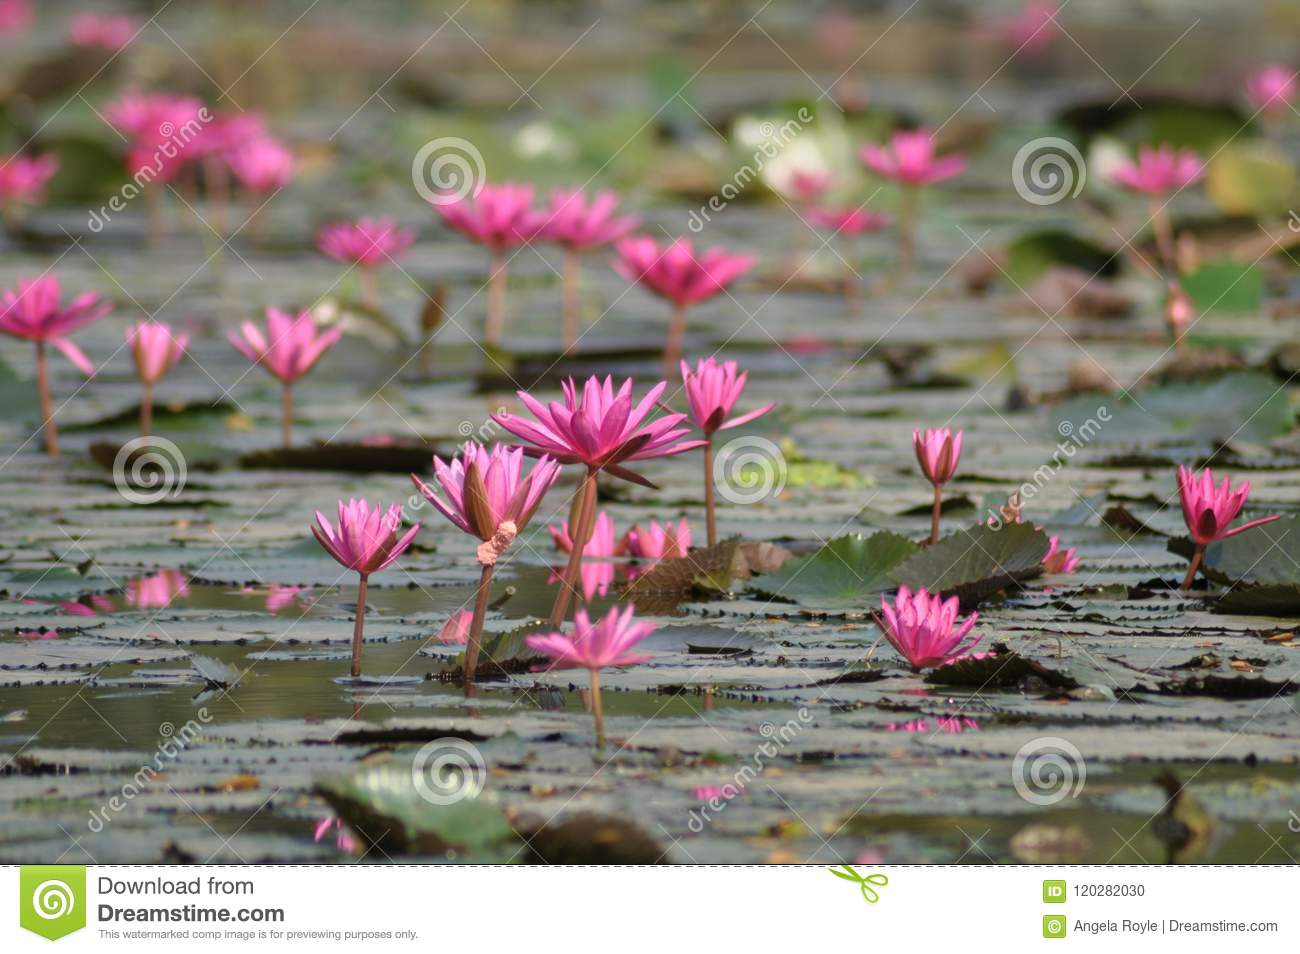 Perspective view of pink water lilies